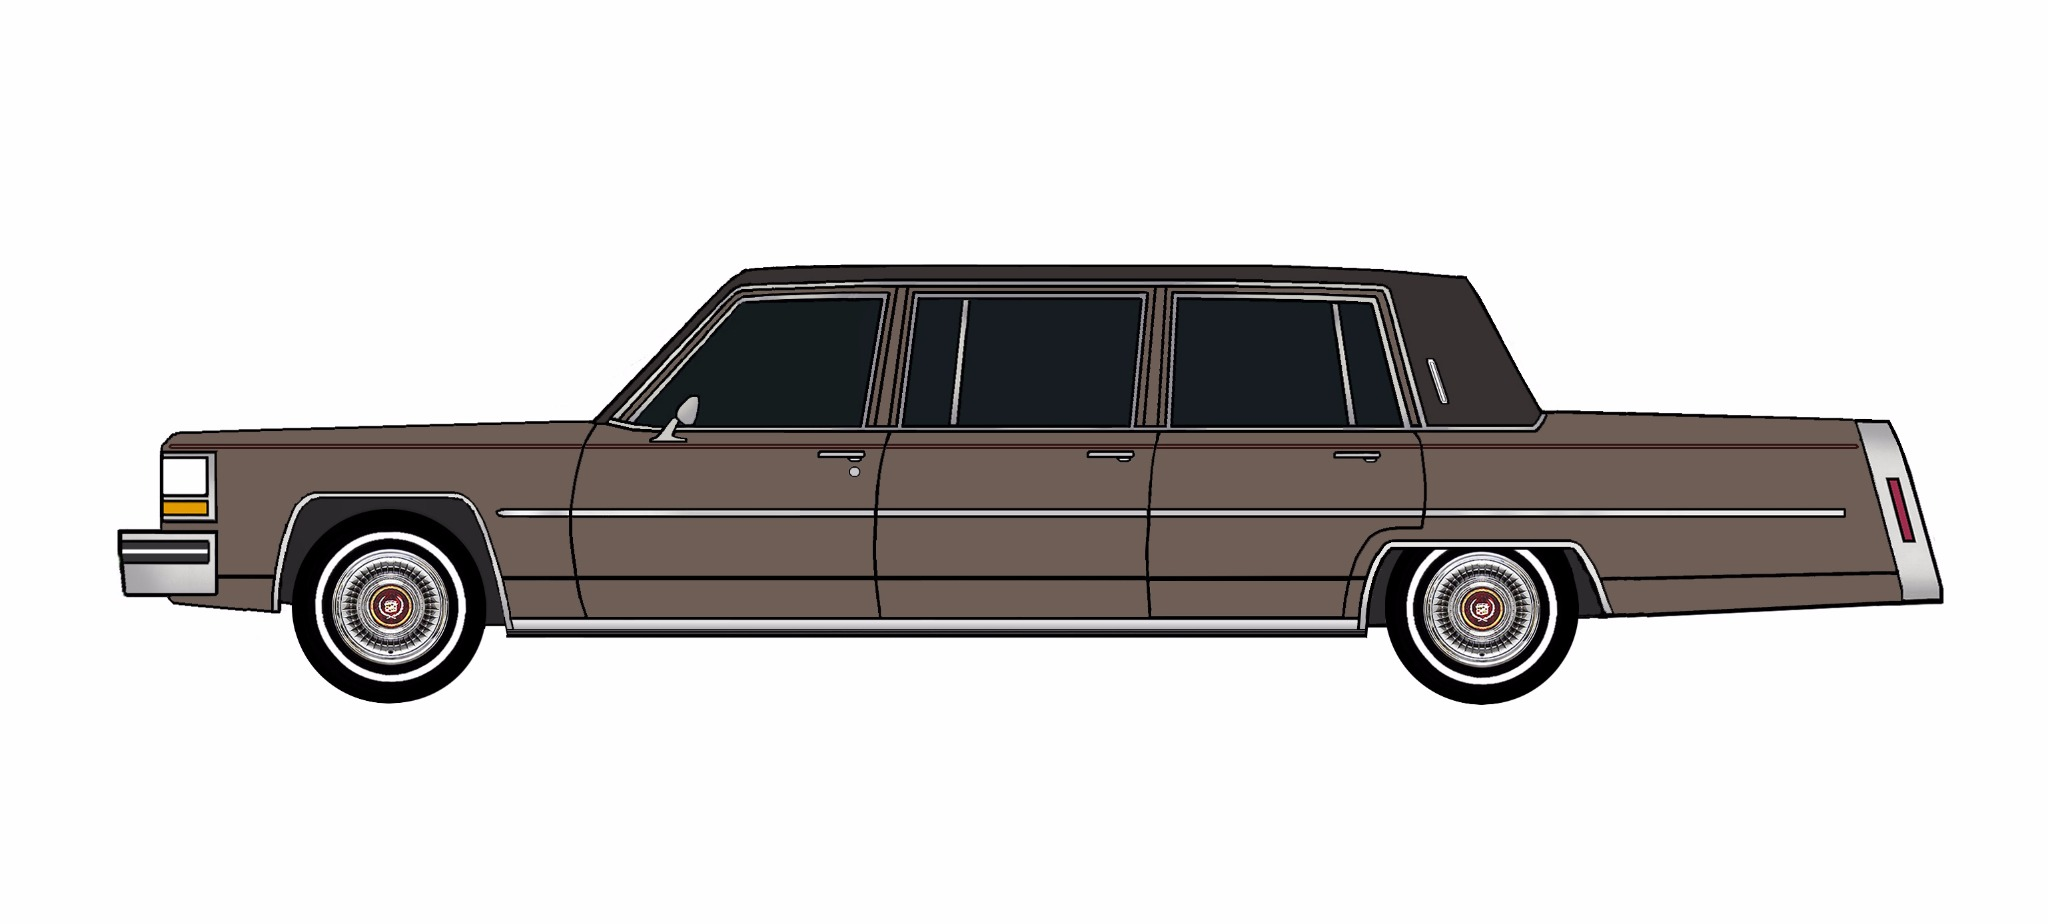 1981 Cadillac Fleetwood Funeral Limo FRENCH GREY